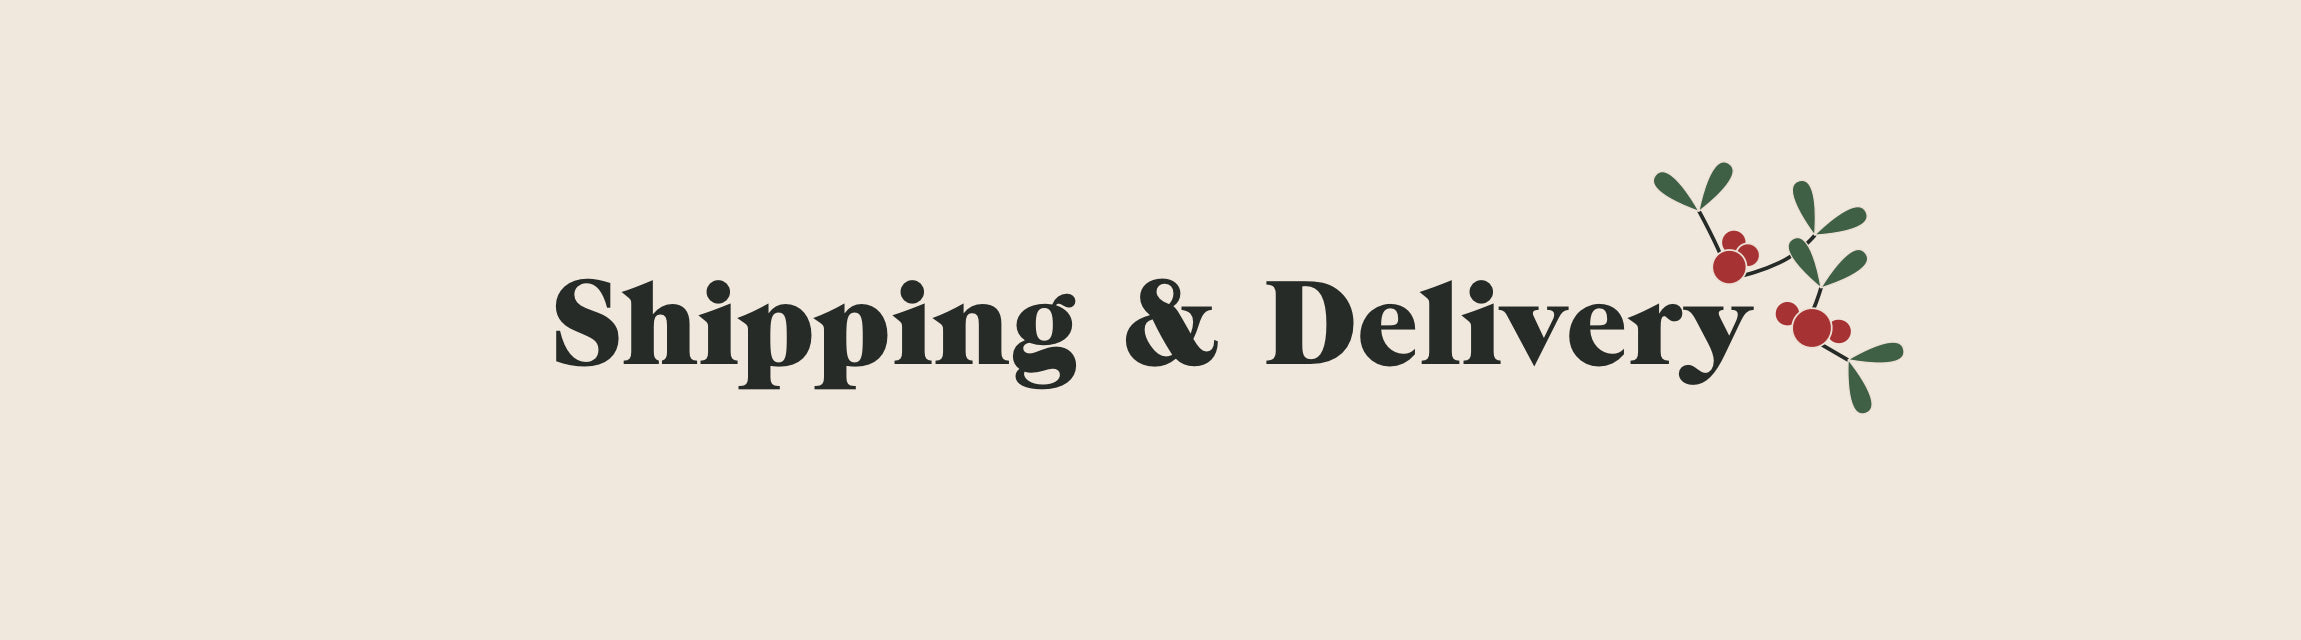 Shipping & Delivery title with mistletoe icon